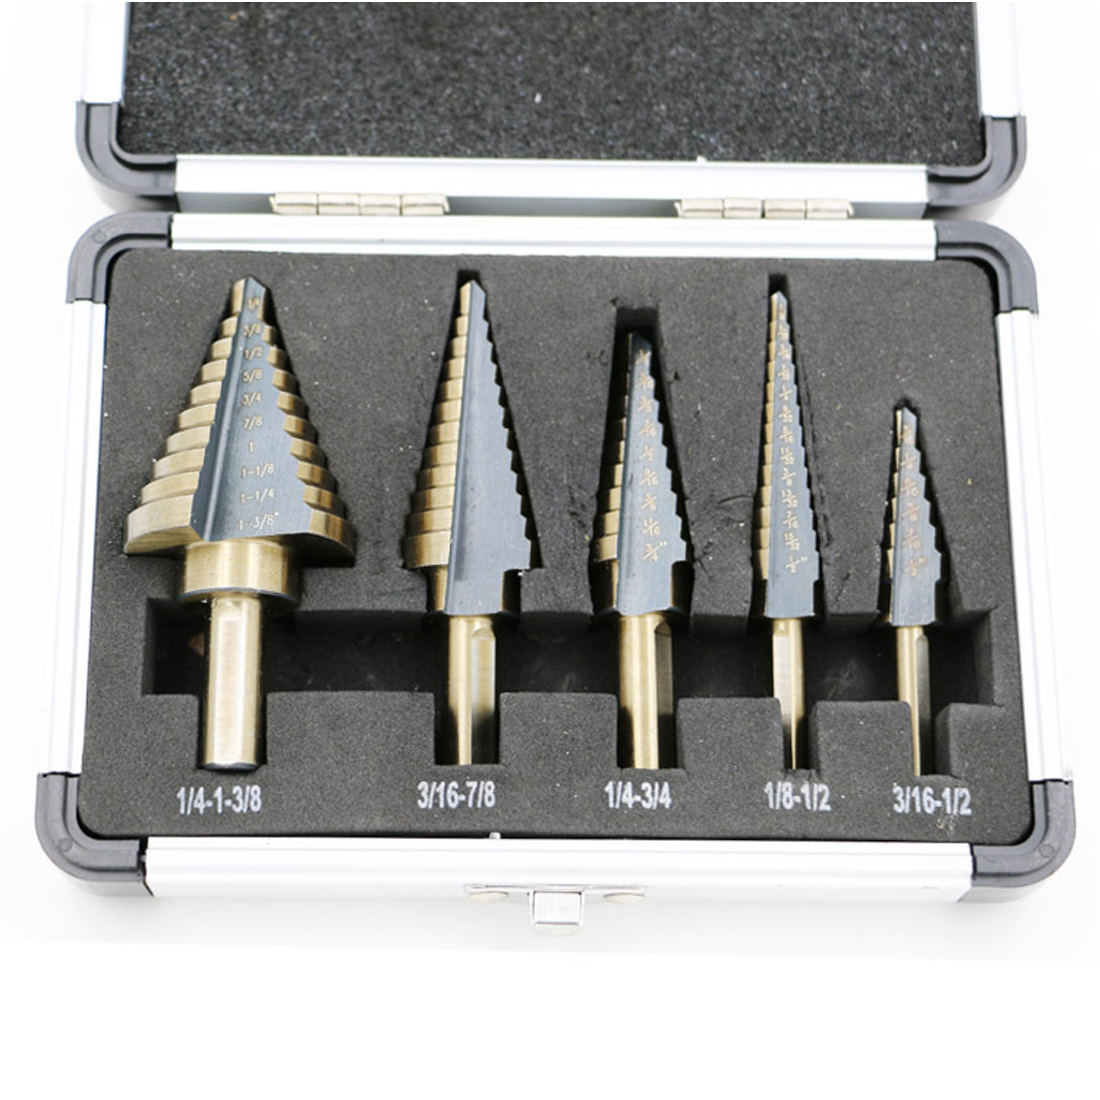 Drill Bit Set 5pcs Hss Cobalt Multiple Hole 50 Sizes Step Drills 1/4-1-3/8 3/16-7/8 1/4-3/4 1/8-1/2 3/16-1/2 Drill Bits 5pcs step drill bit set hss cobalt multiple hole 50 sizes sae step drills 1 4 1 3 8 3 16 7 8 1 4 3 4 1 8 1 2 3 16 1 2 drill bits